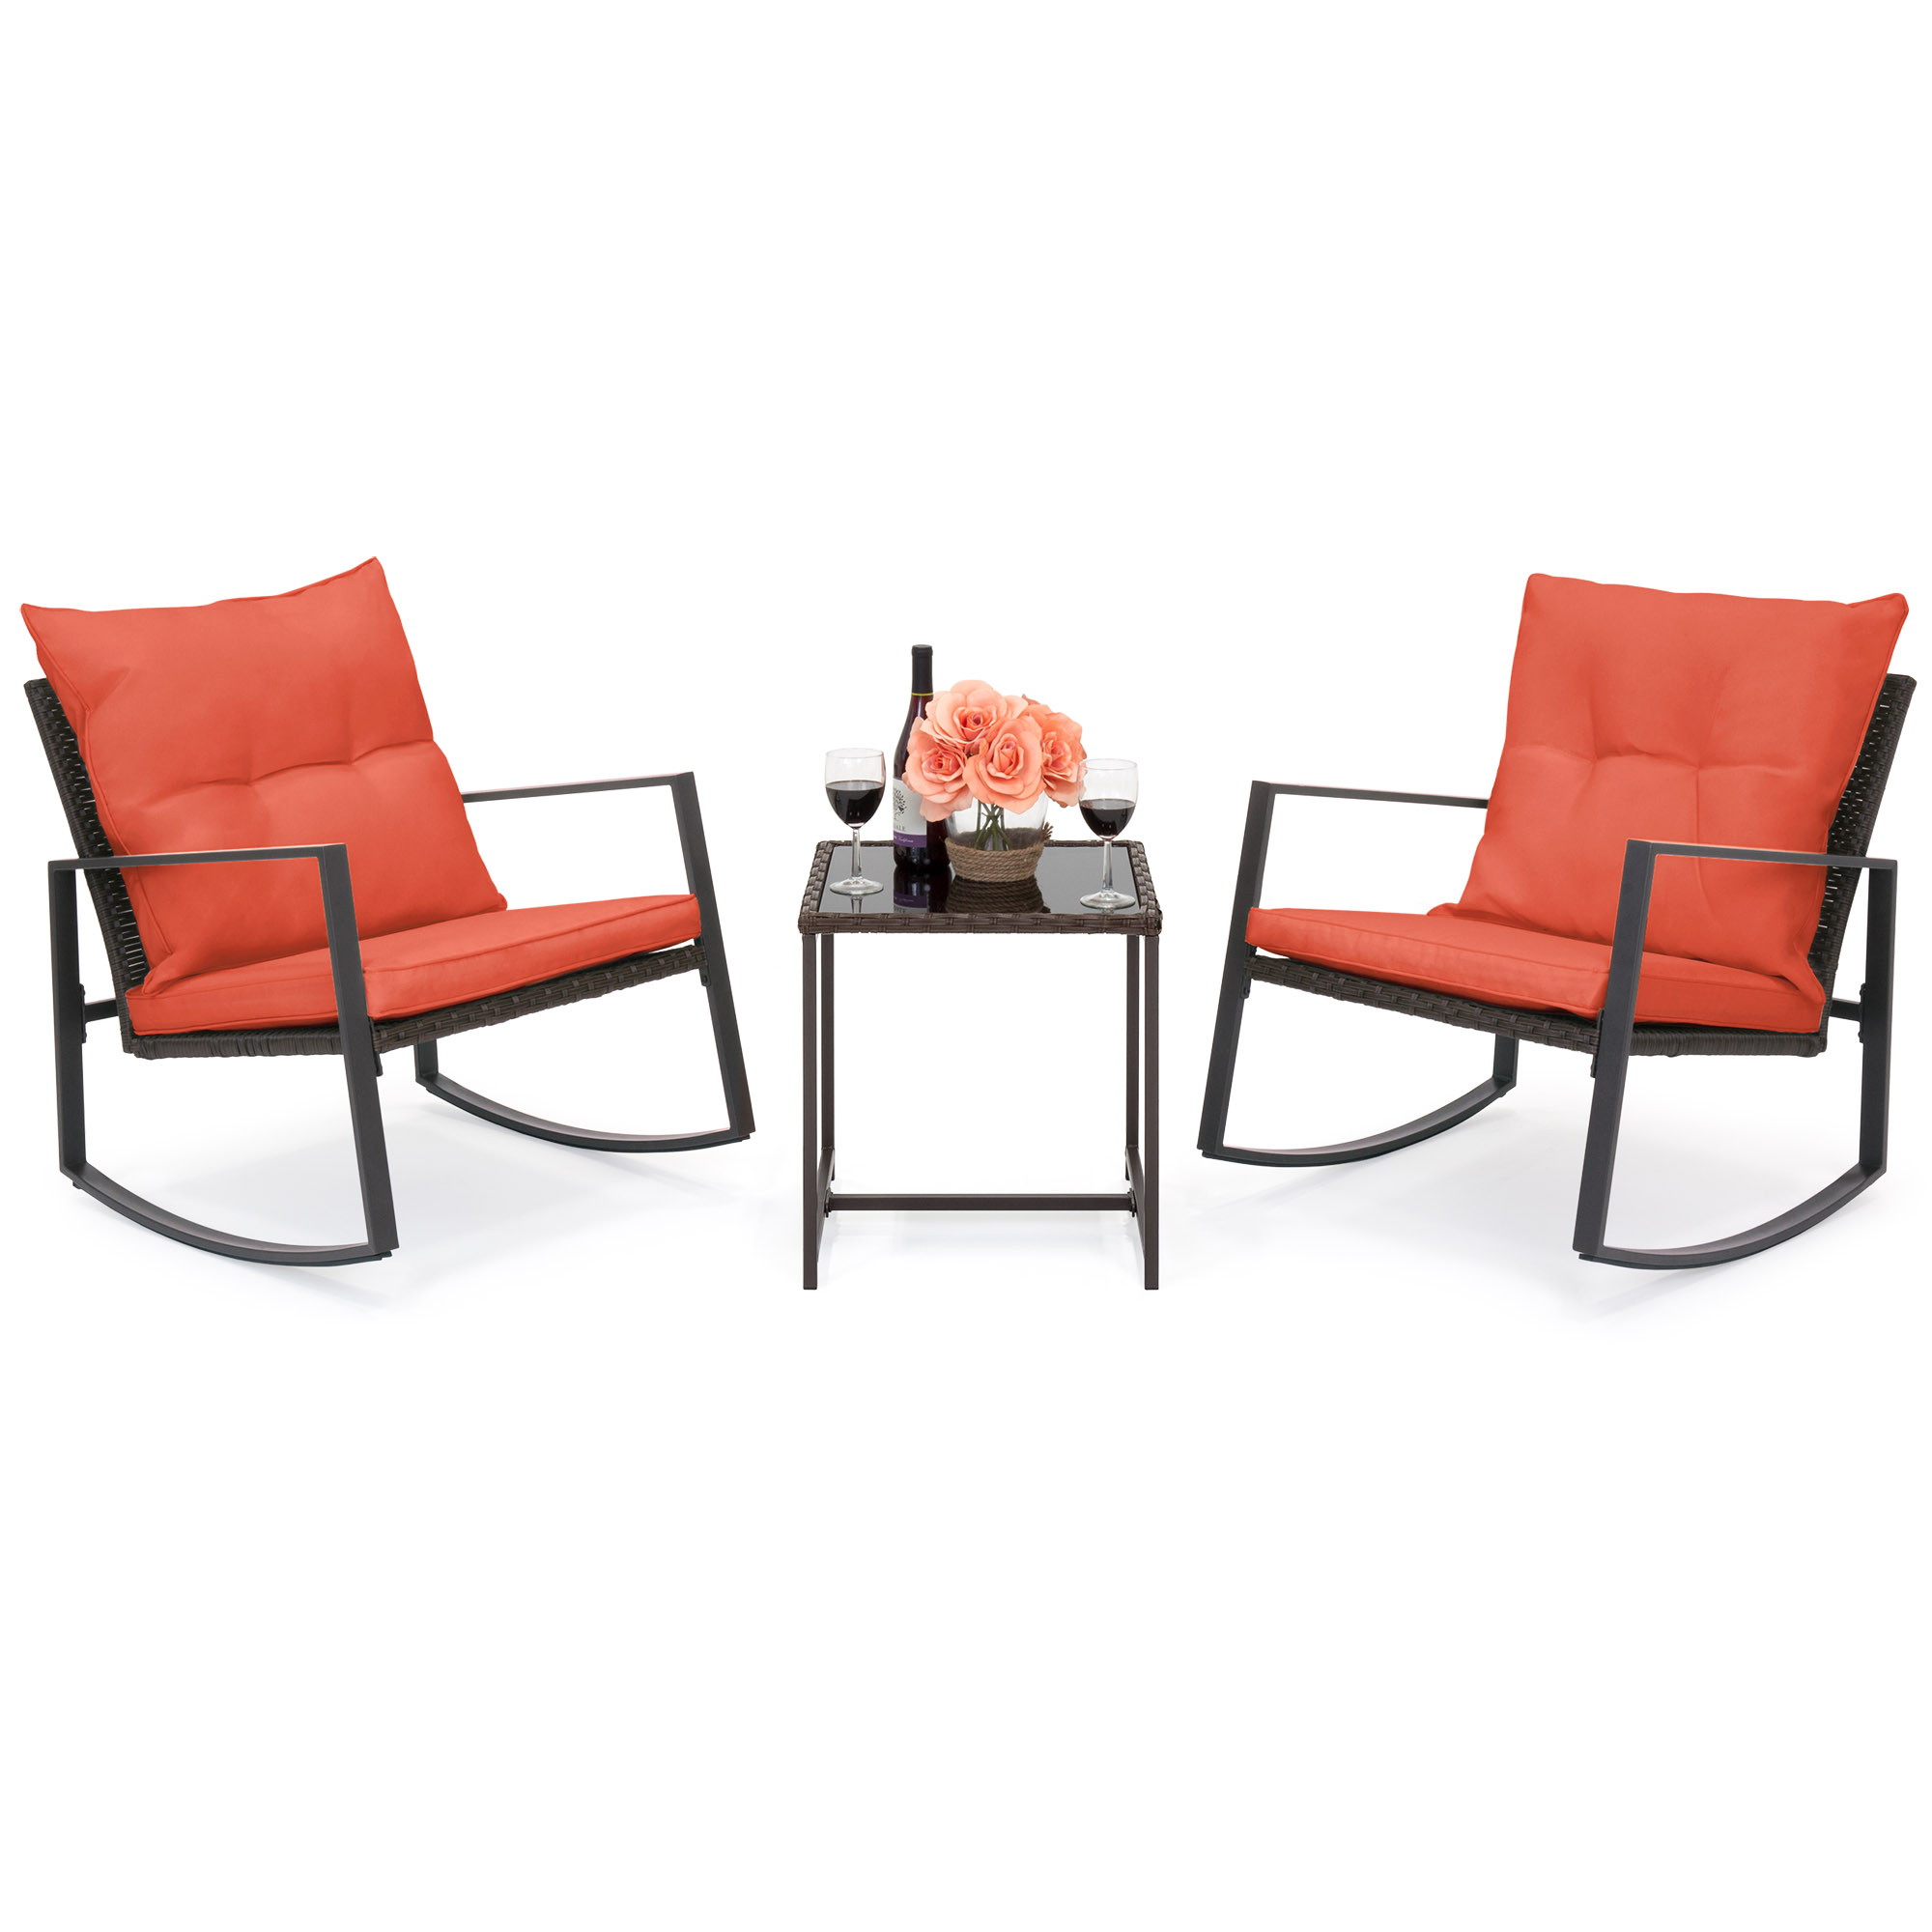 Best Choice Products 3-Piece Patio Wicker Bistro Furniture Set w/ 2 Rocking Chairs, Glass Side Table, Cushions - Red